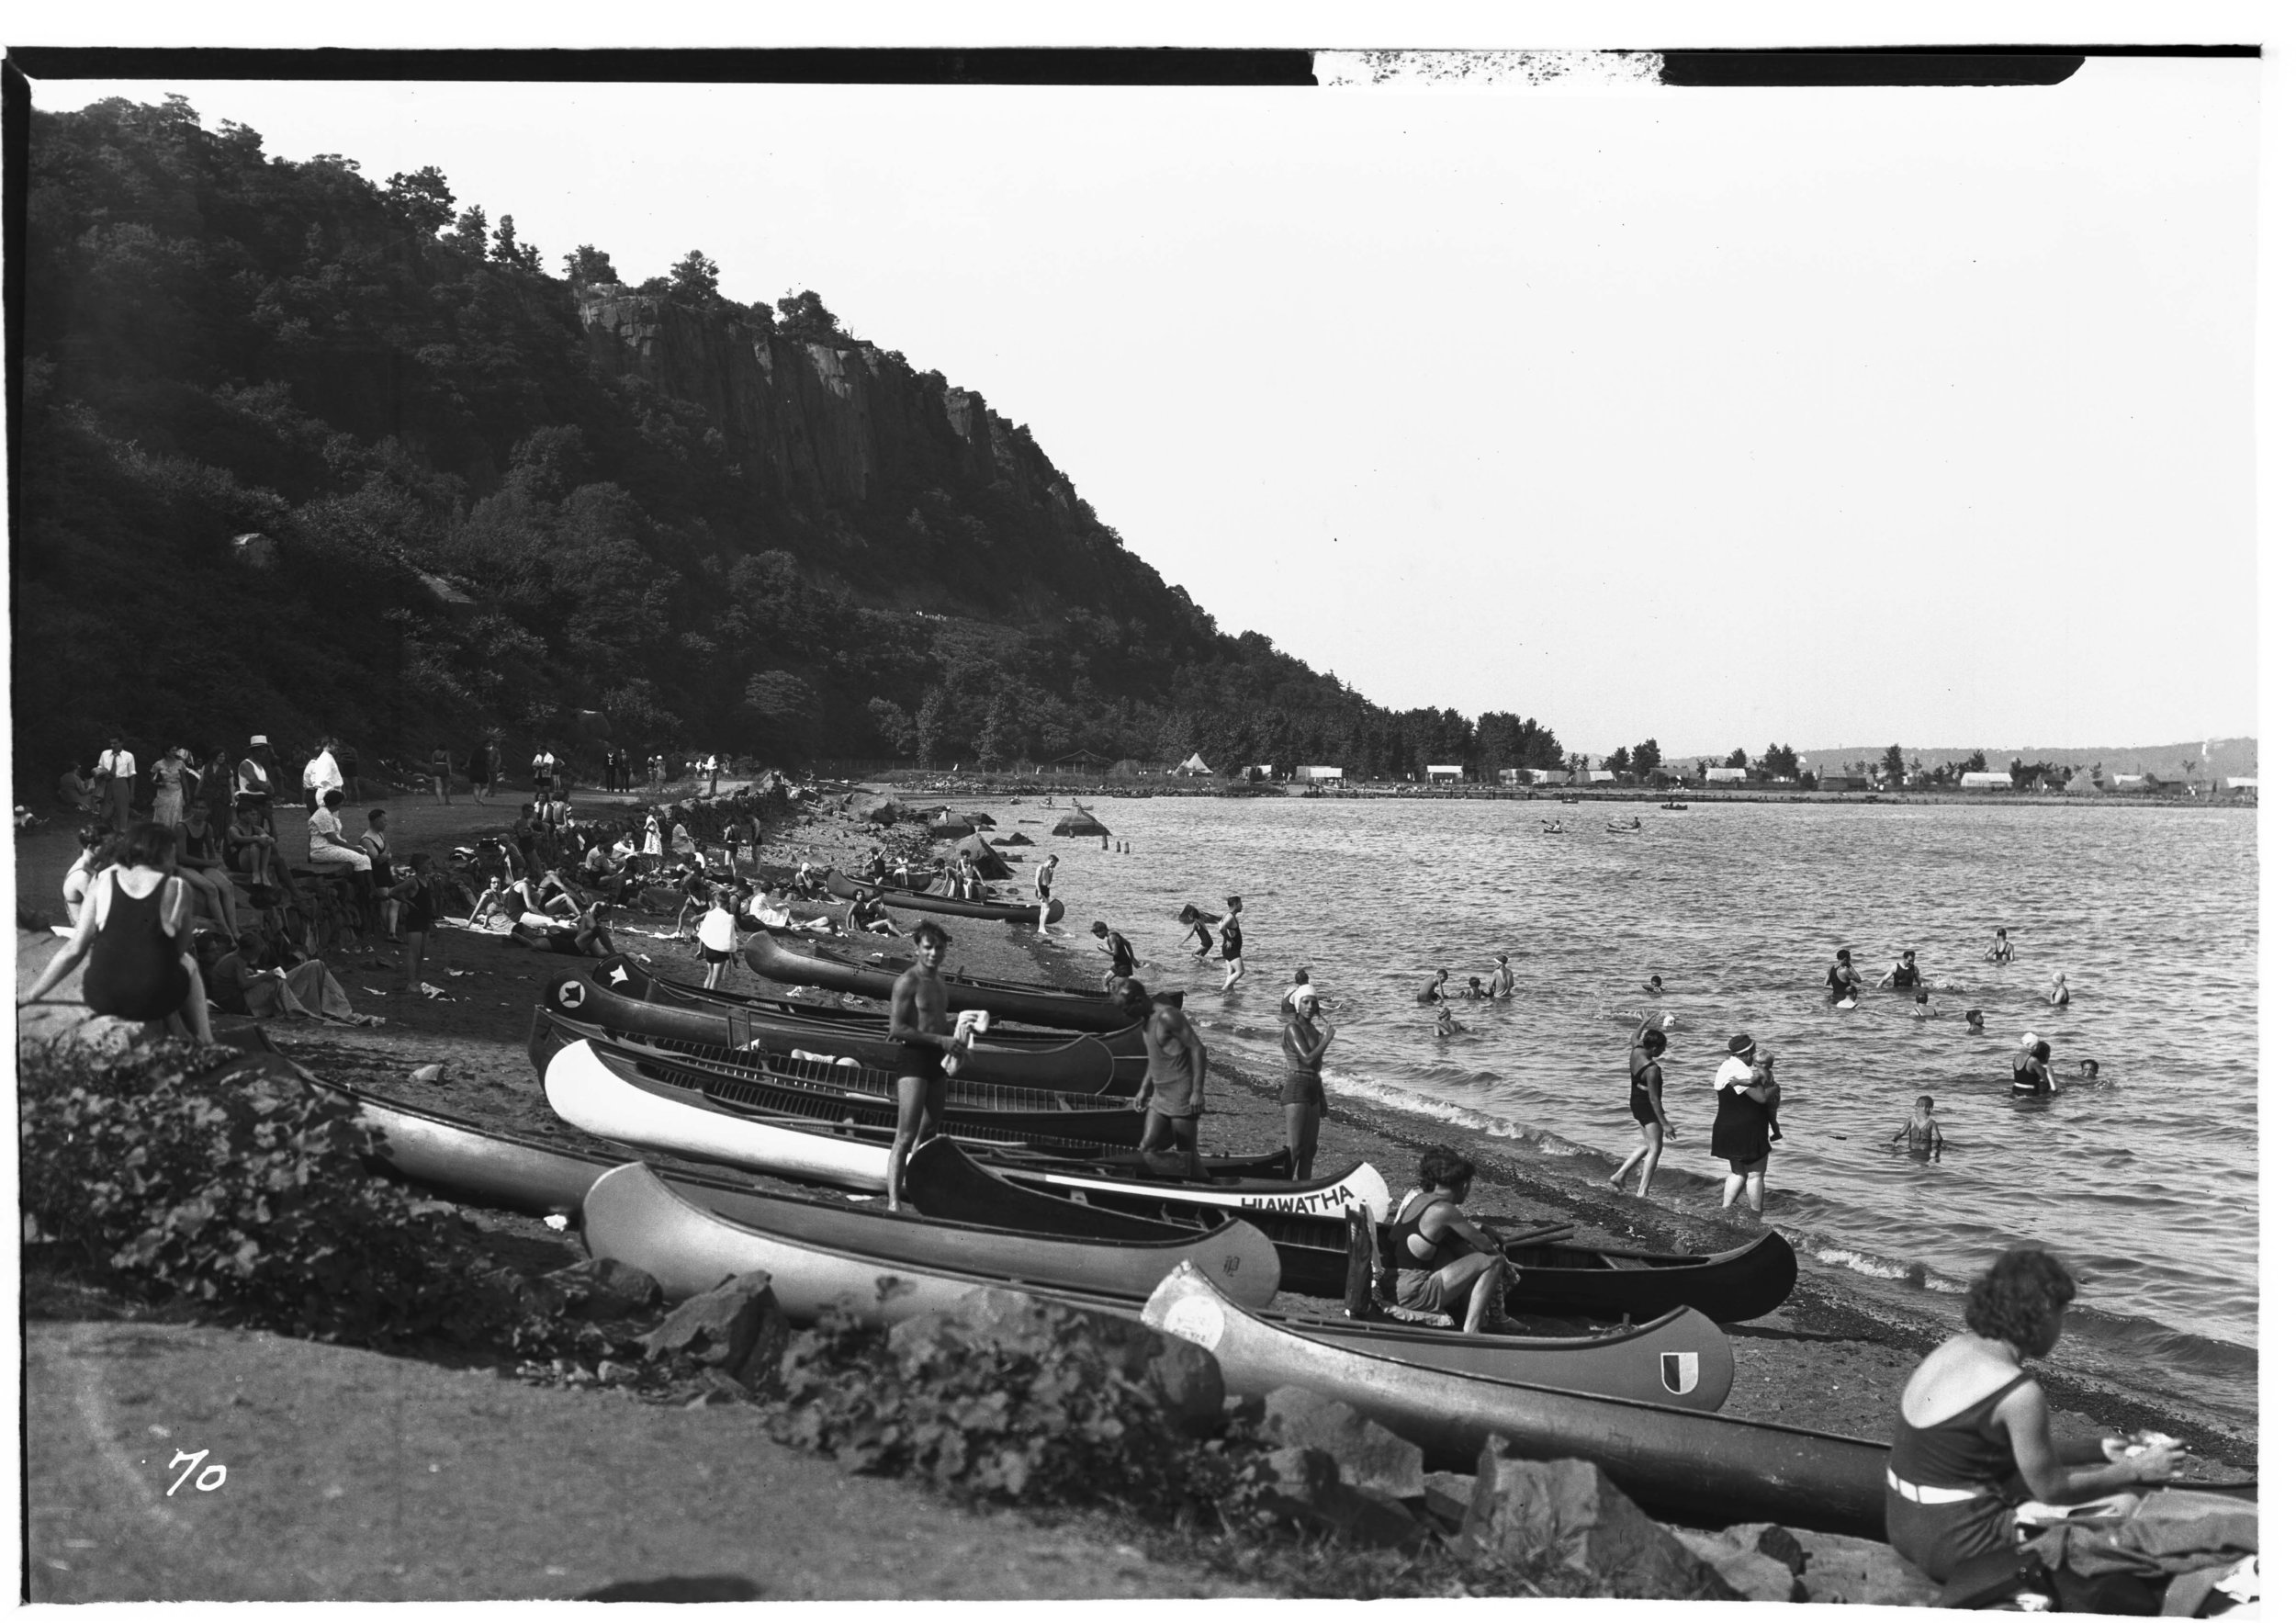 Figure 1. Paddlers on Carpenter's Beach, circa 1932. Courtesy of the Palisades Interstate Park Commission.